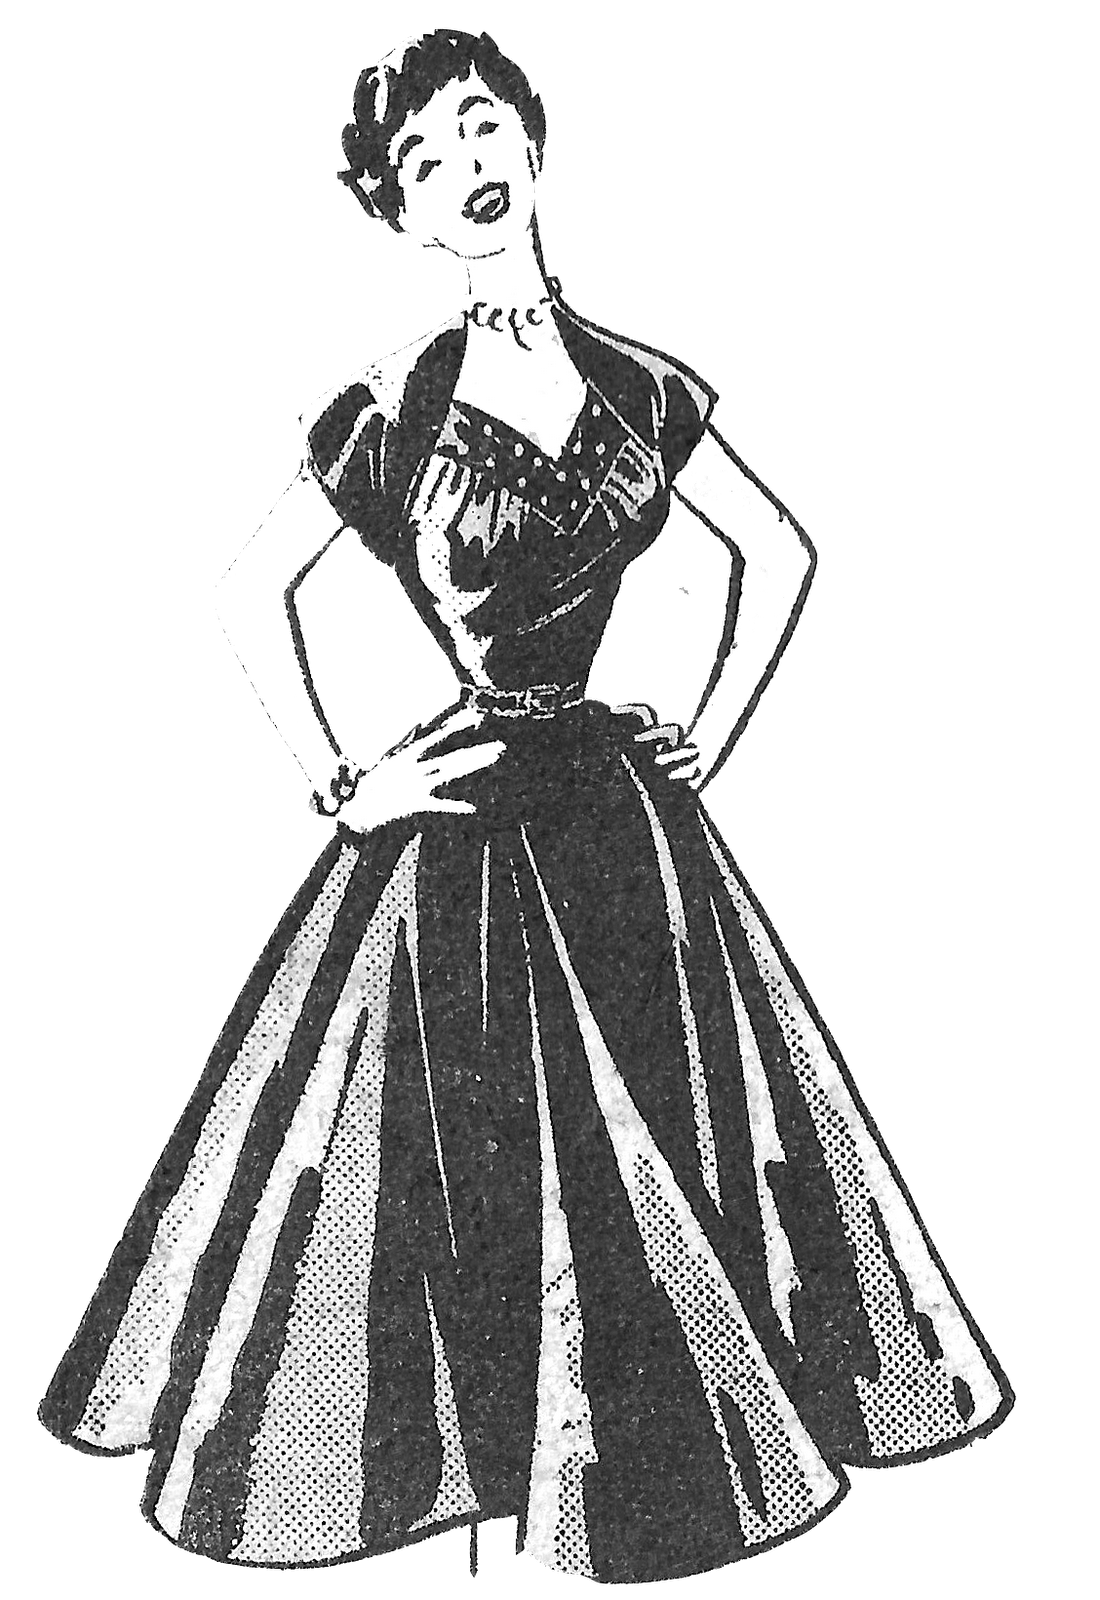 Fashion clipart costume designer. Pin by mary barnes